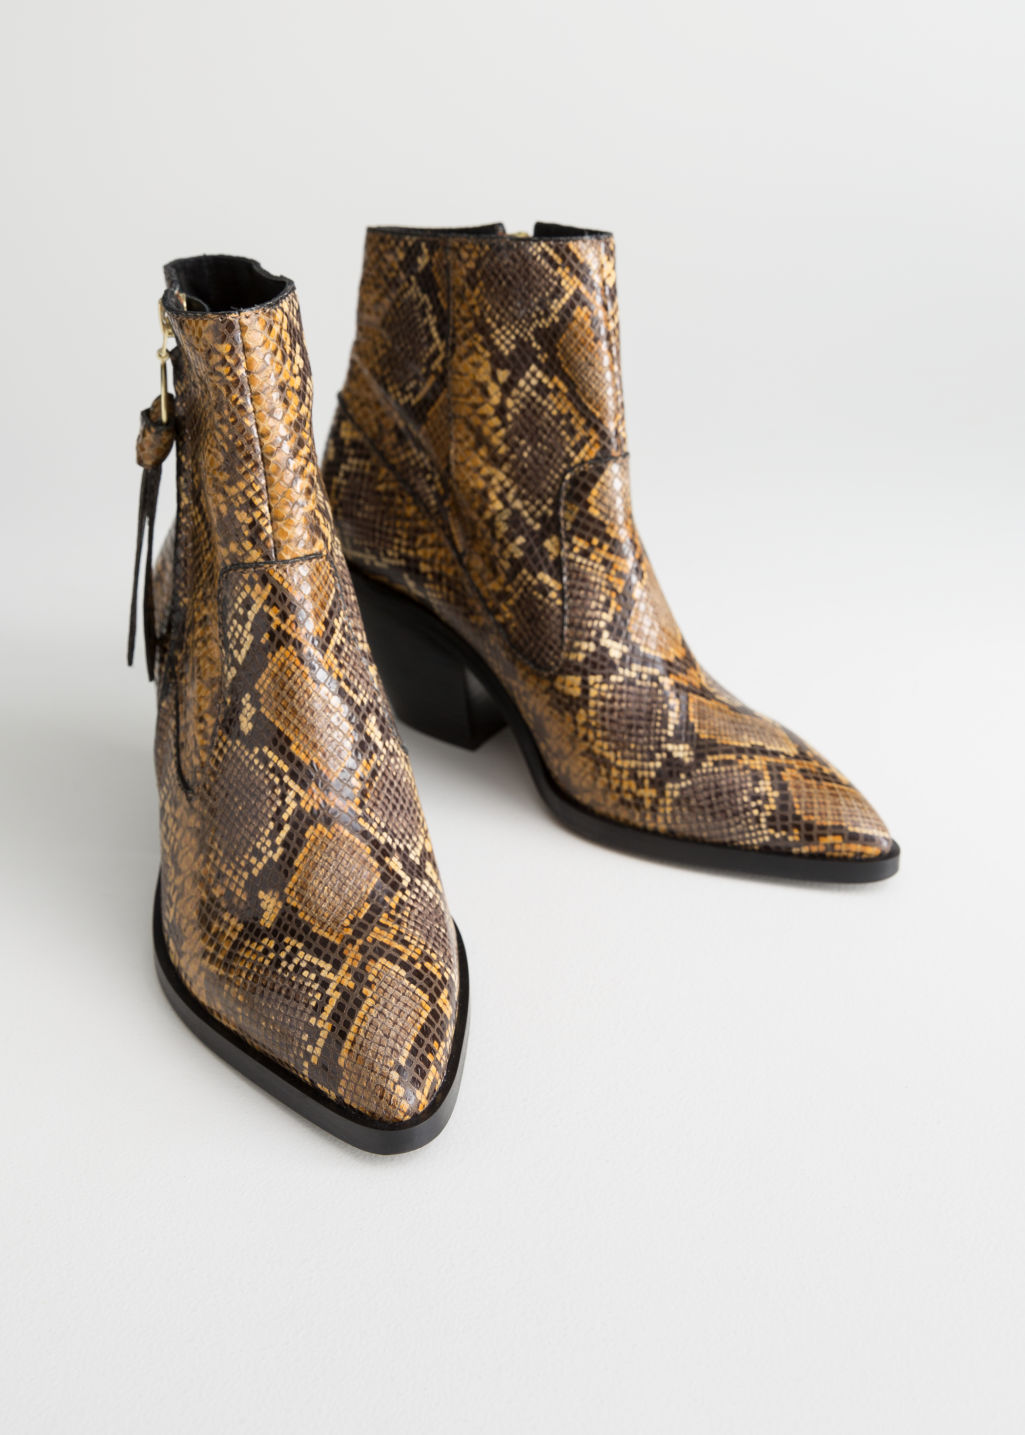 a790578ef21a3 Snake Cowboy Ankle Boots - Snake - Ankleboots -   Other Stories